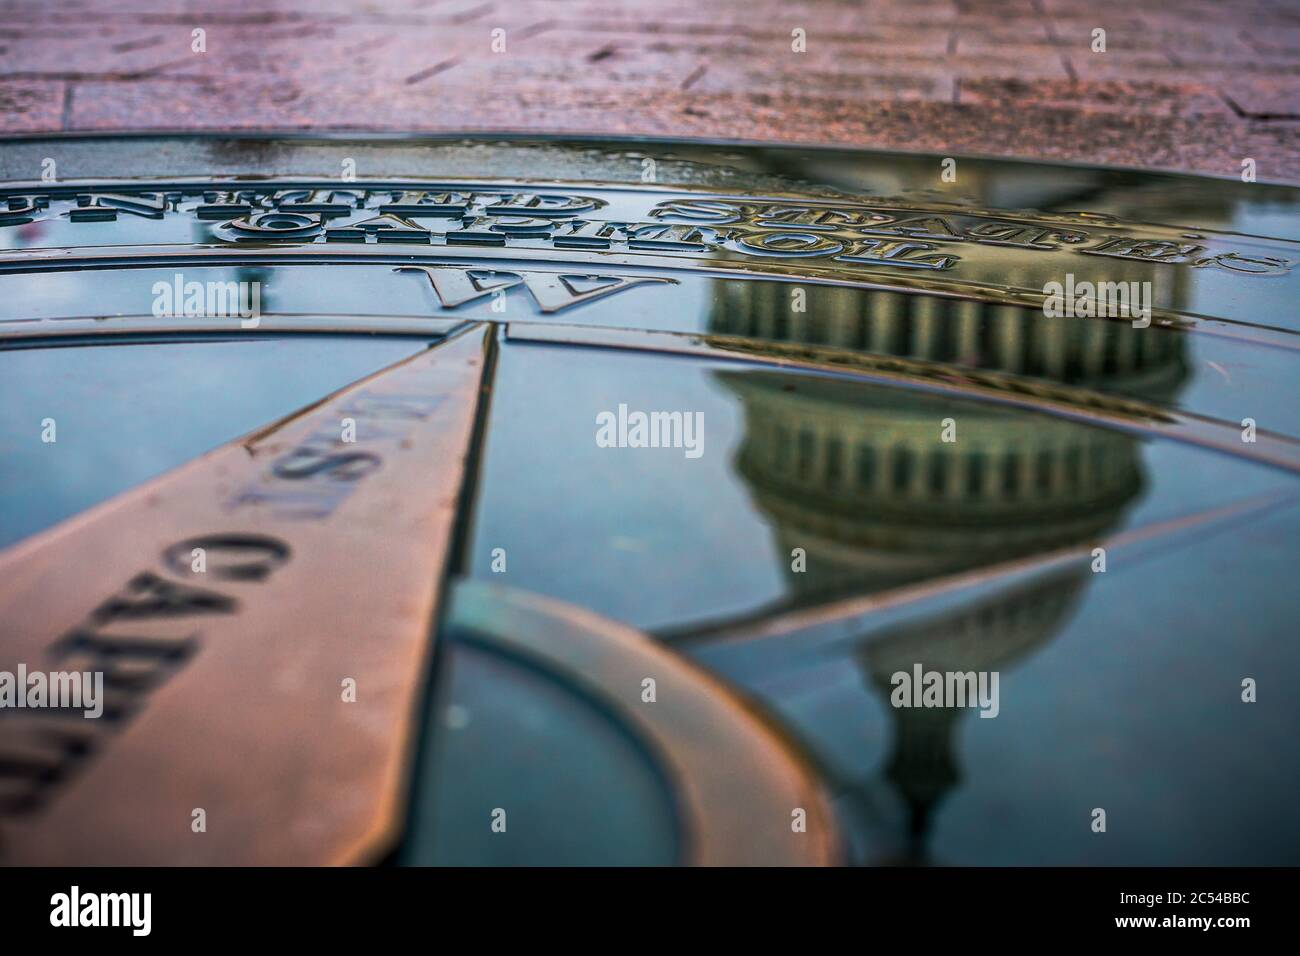 The United States Capitol Dome reflected in water Stock Photo